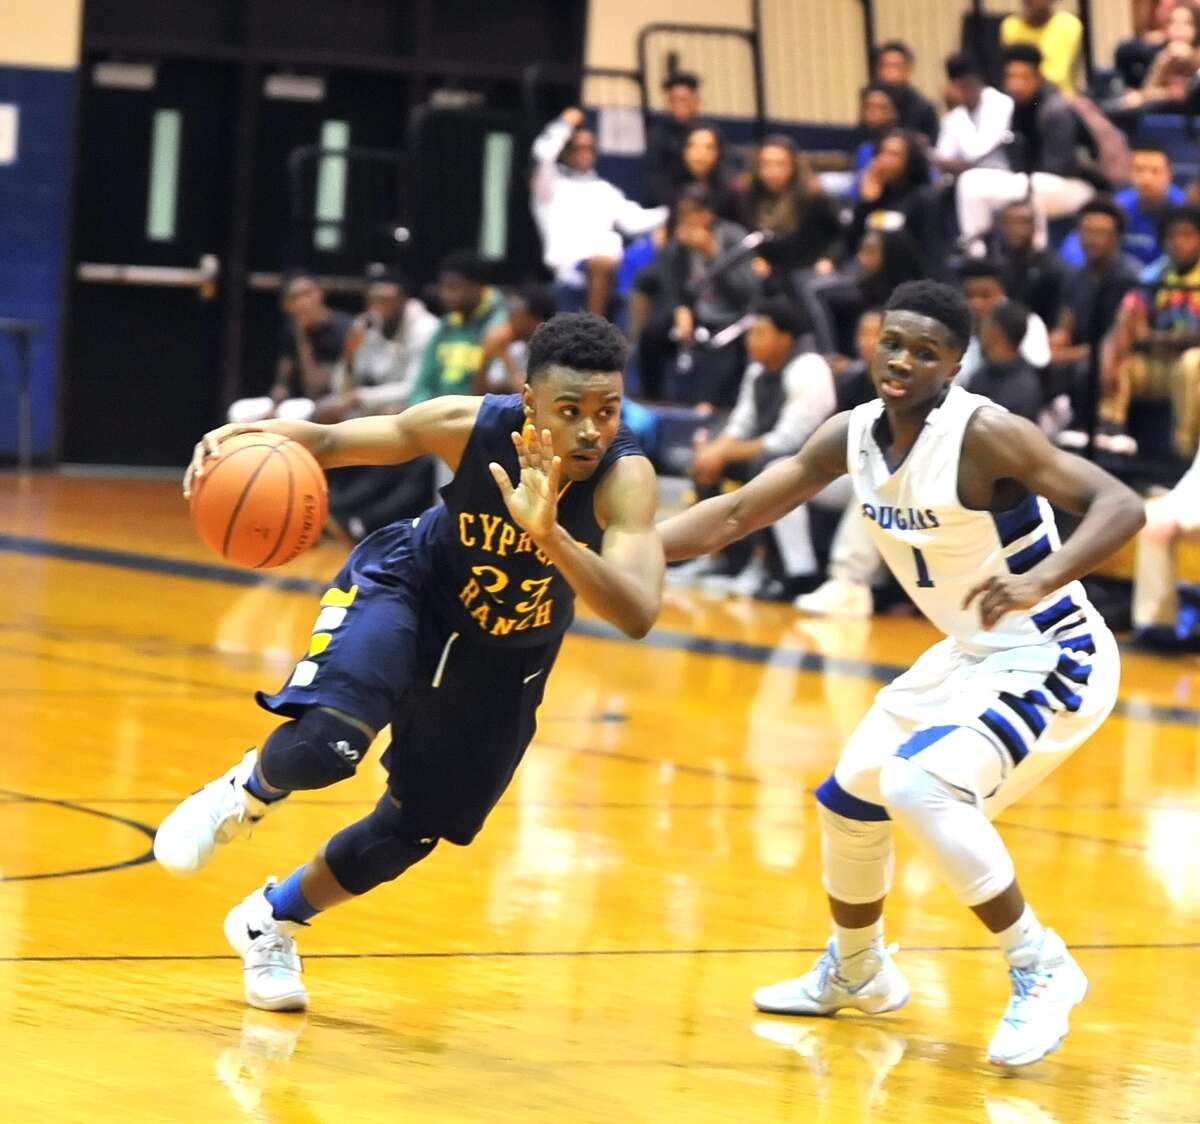 Cy Ranch's Michael Tate (23), left, drives past Cy Creek's Davon Berry in the Mustangs' 56-43 win.